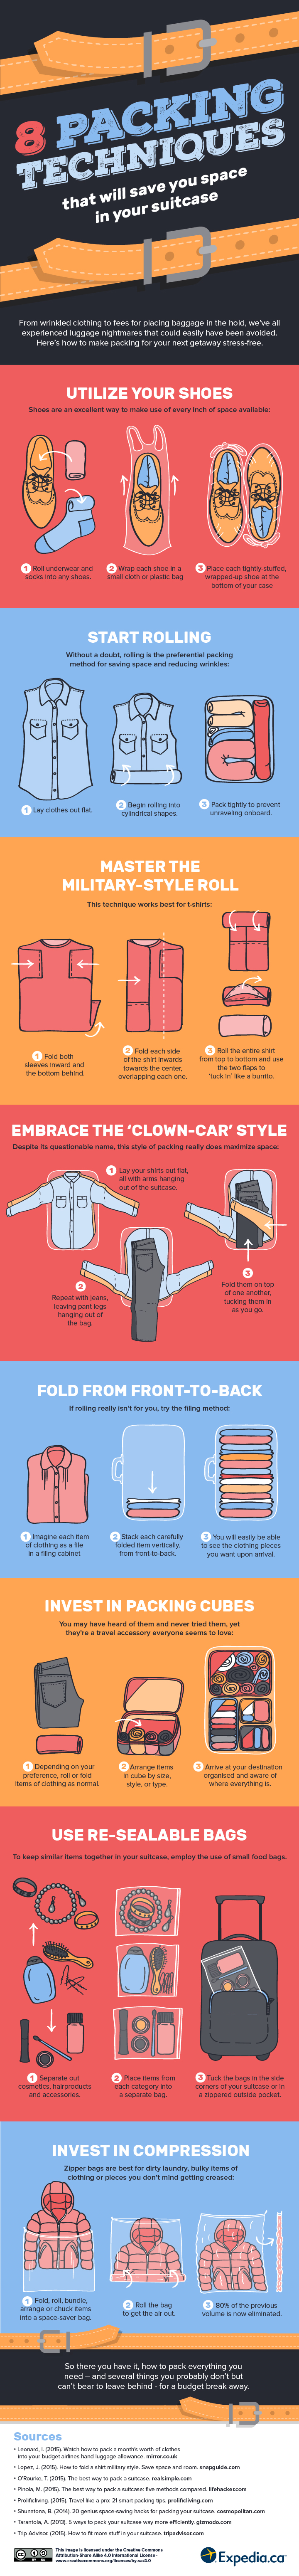 Packing Tips and Advice